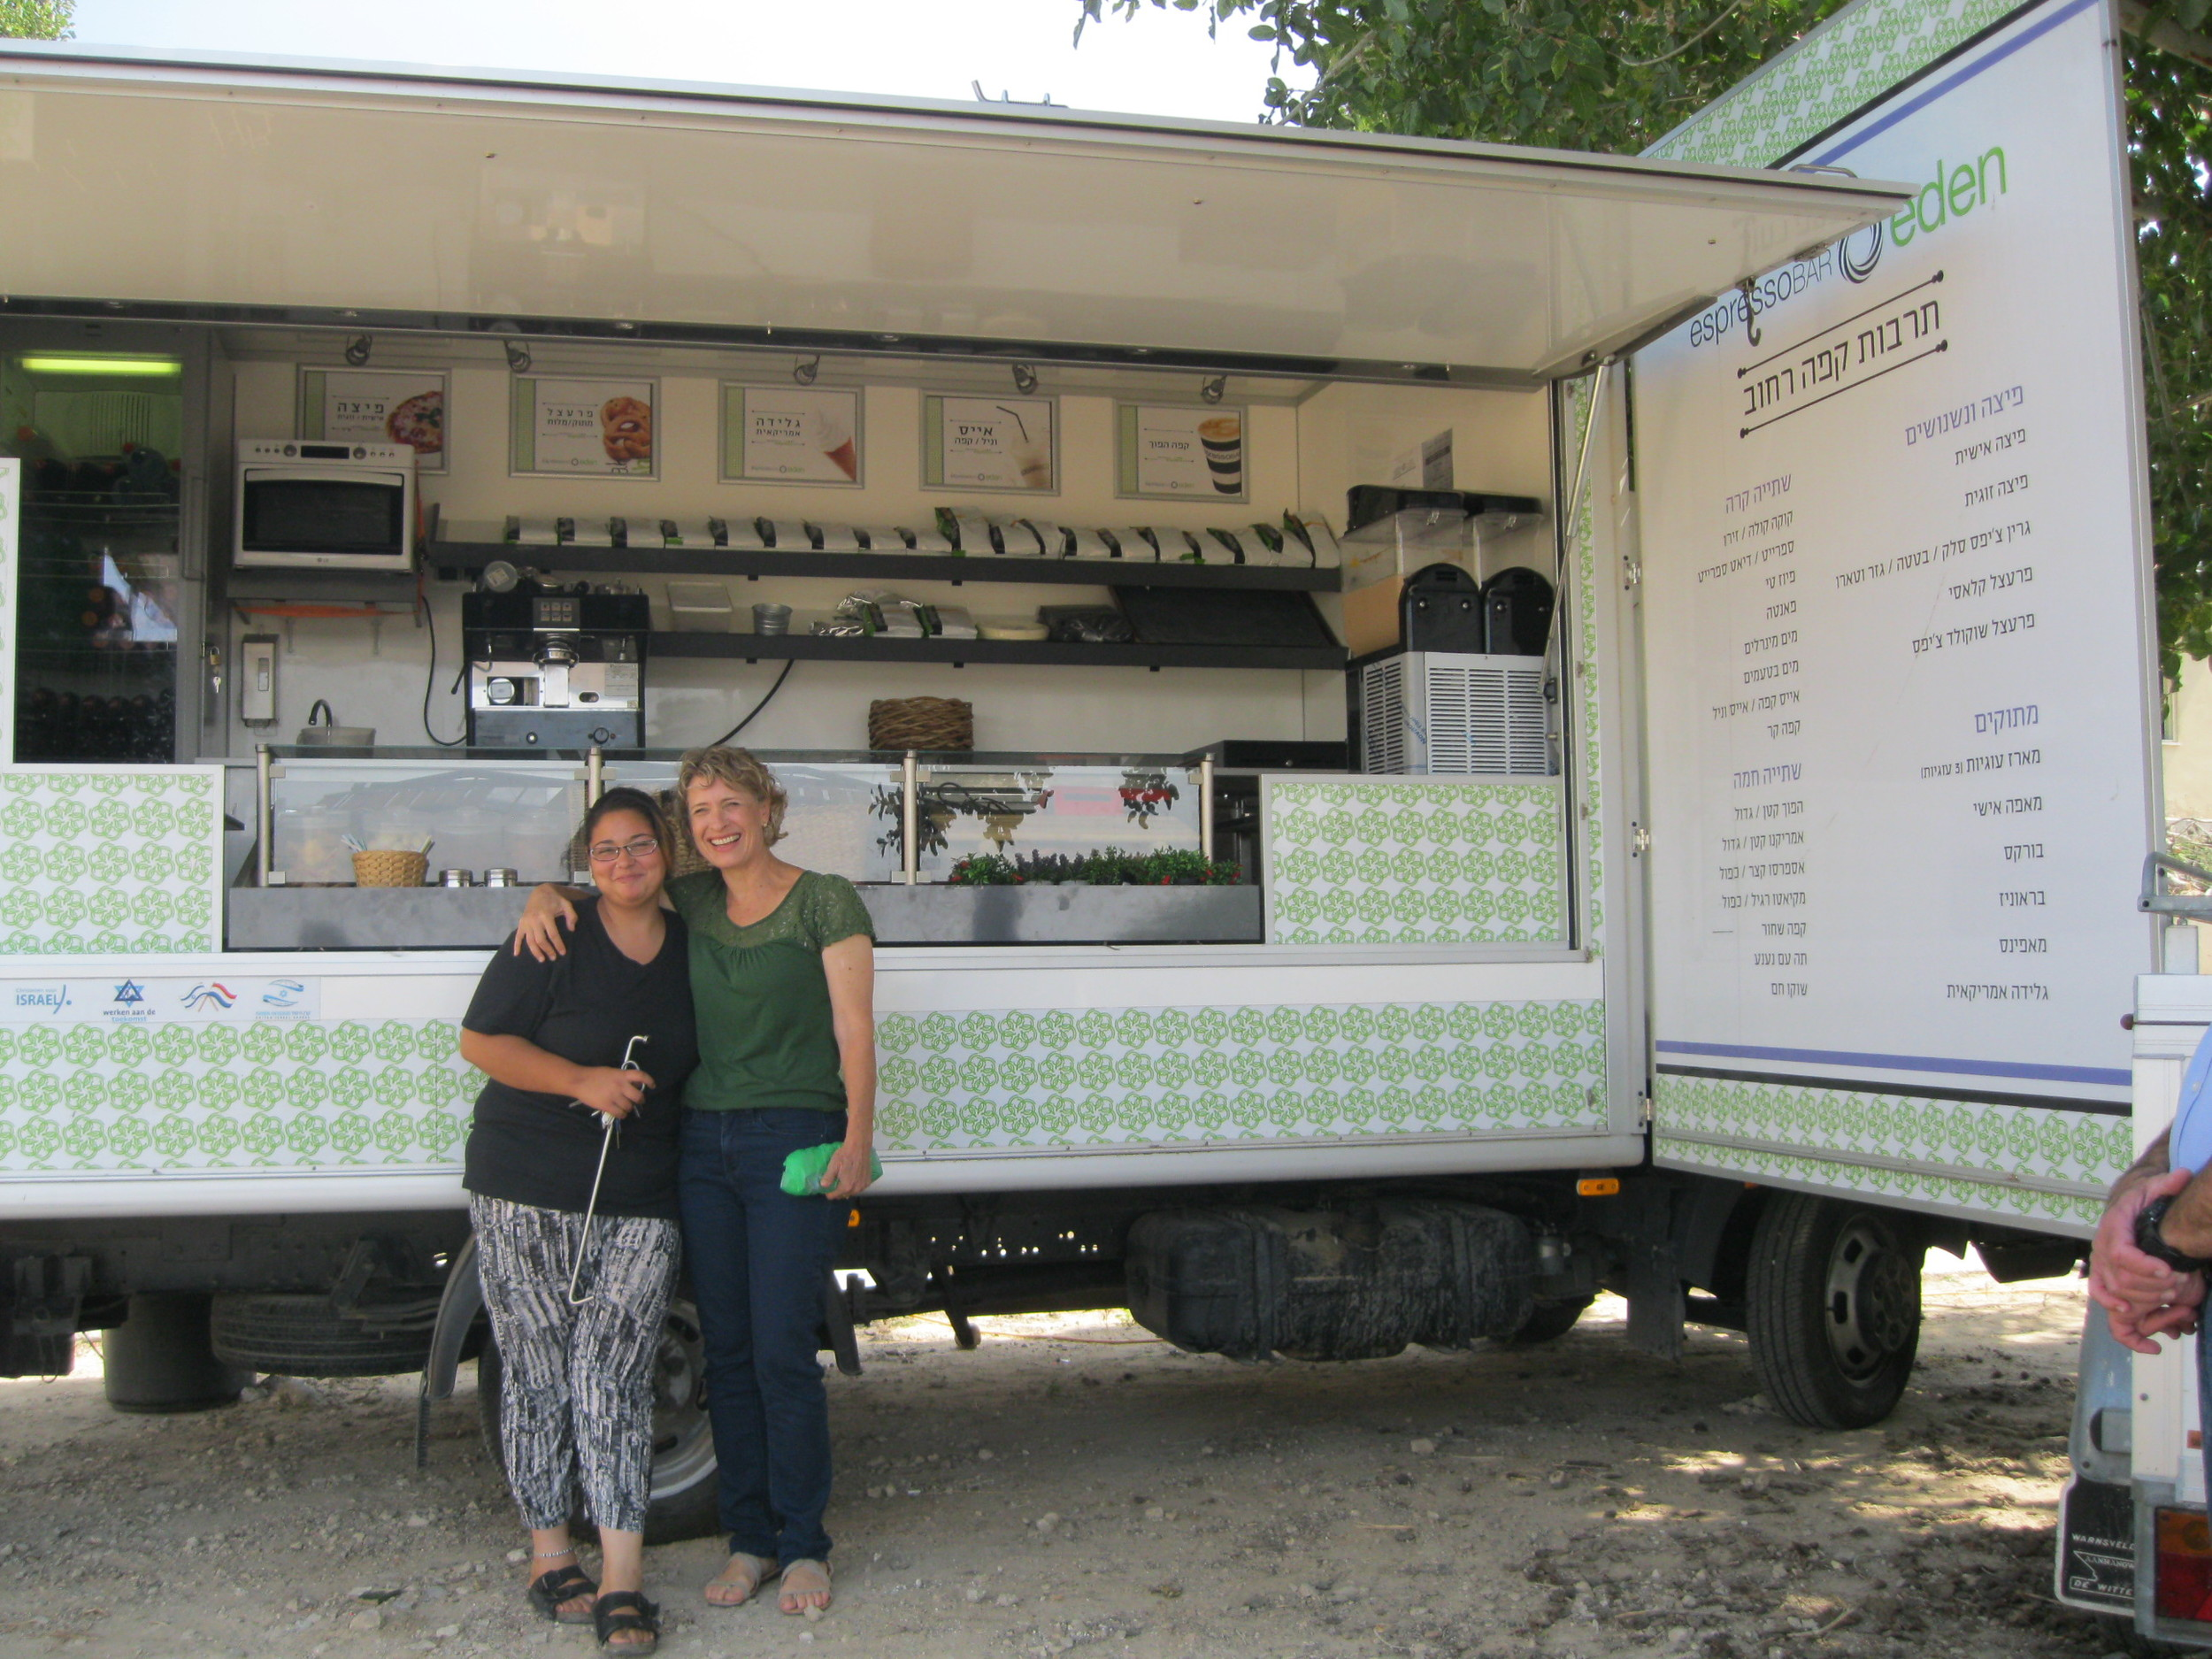 The Eden Center food/coffee truck.